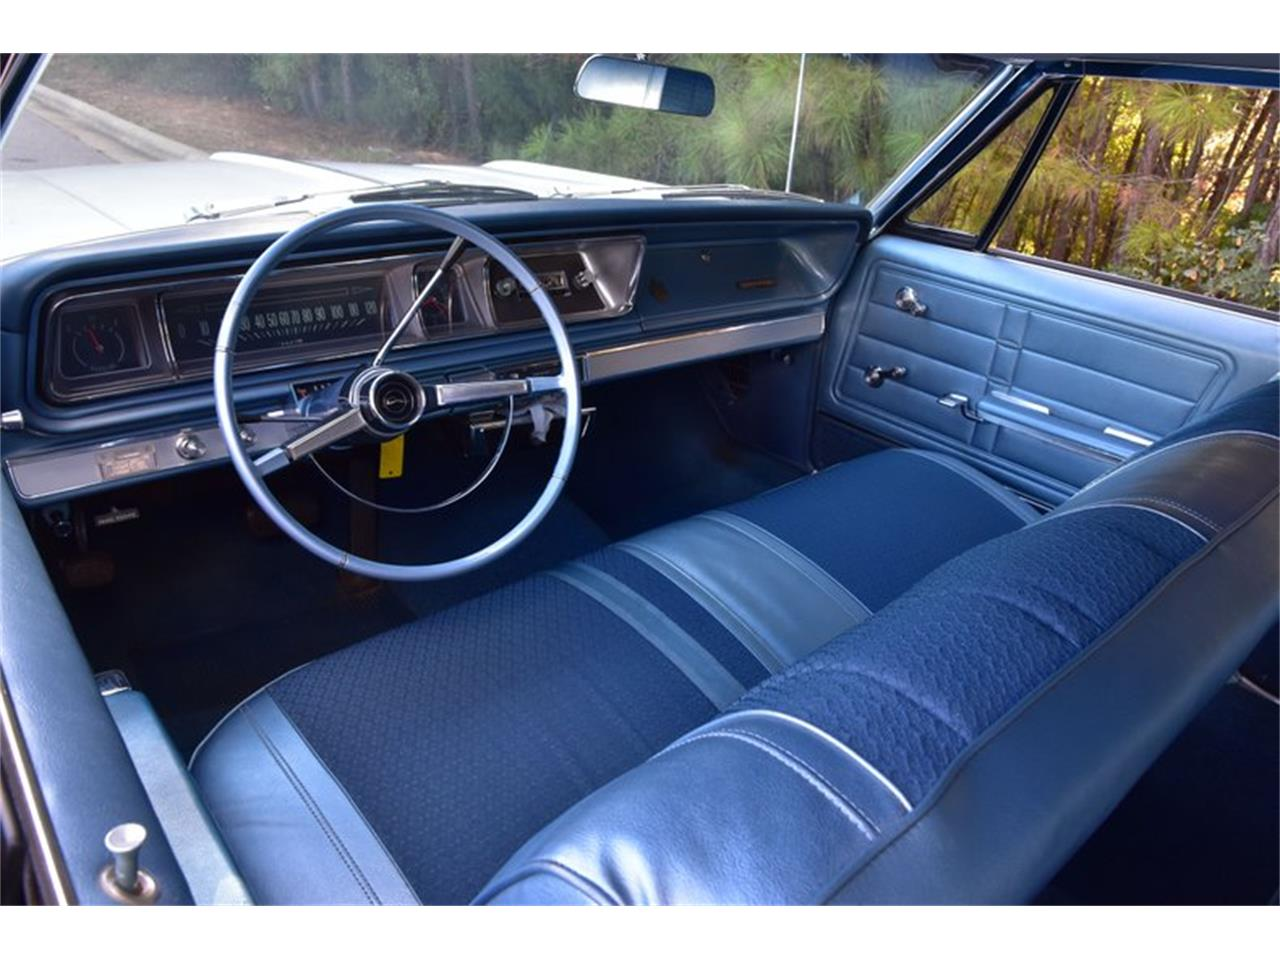 1966 Chevrolet Impala (CC-1273248) for sale in Raleigh, North Carolina